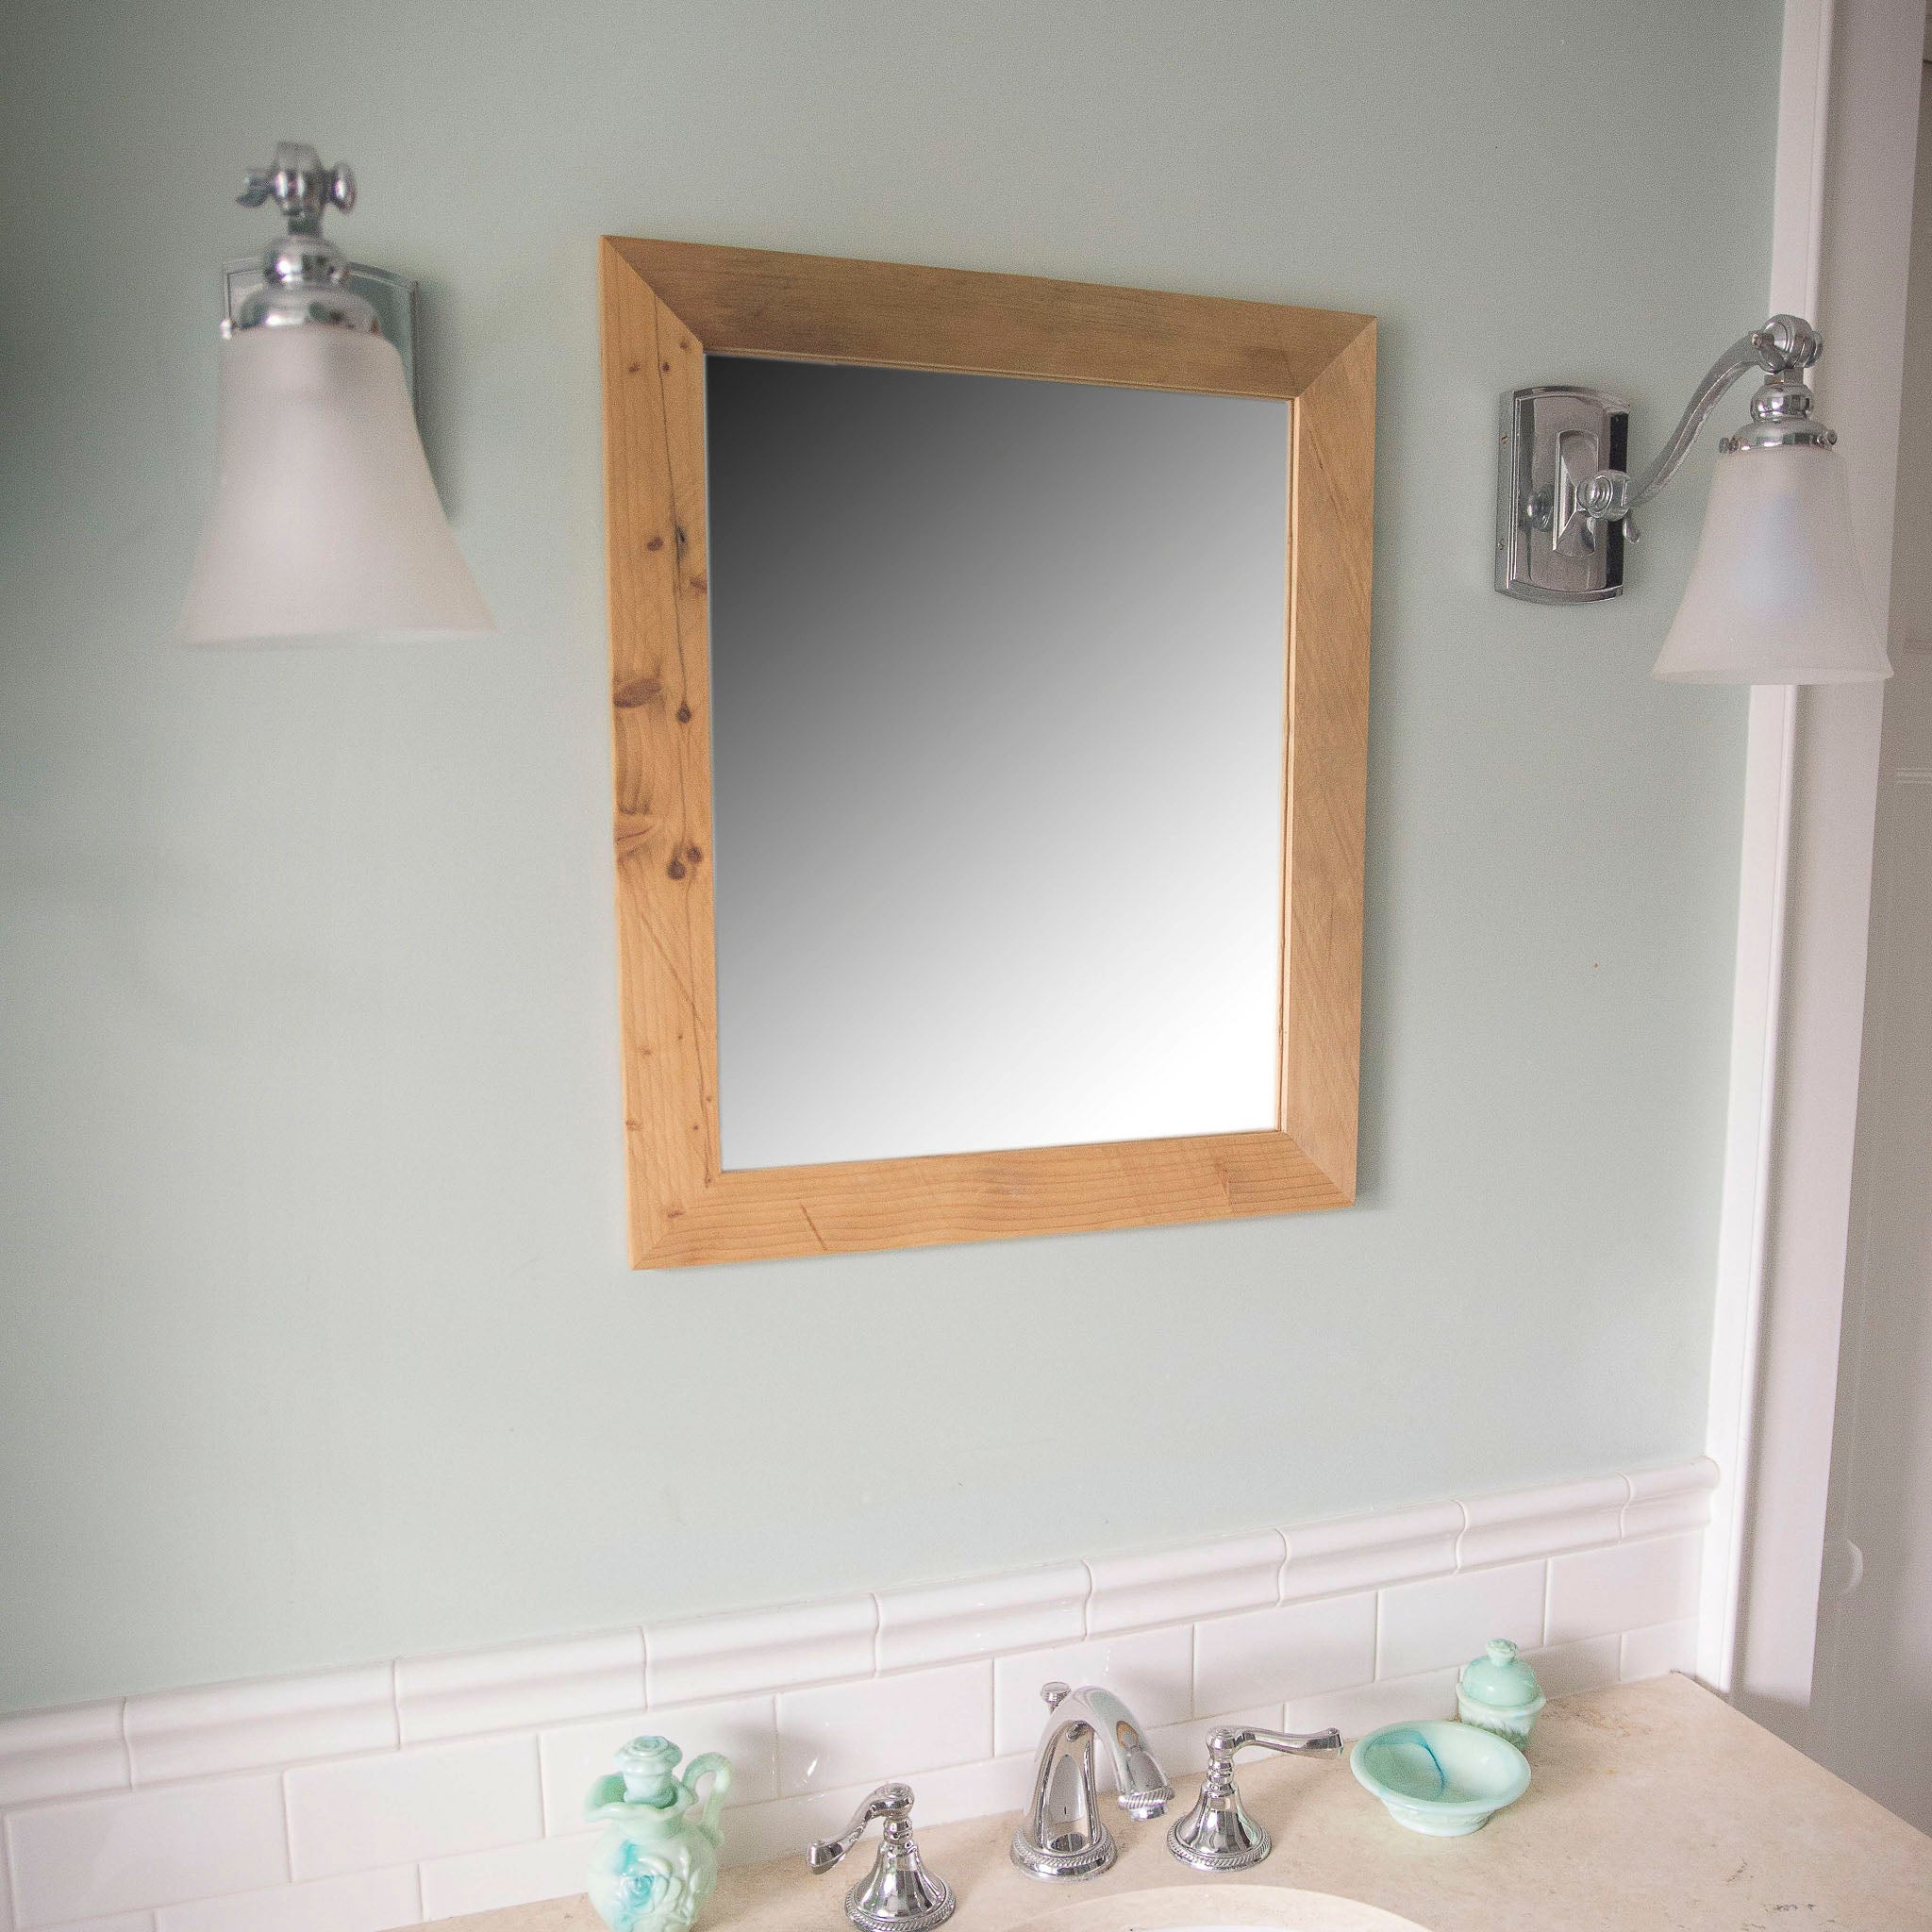 Vanity Mirrors For Bathroom Handcrafted Vanity Mirror -- Entry Mirror, Bathroom Mirror -- Reclaimed  wood from Detroit